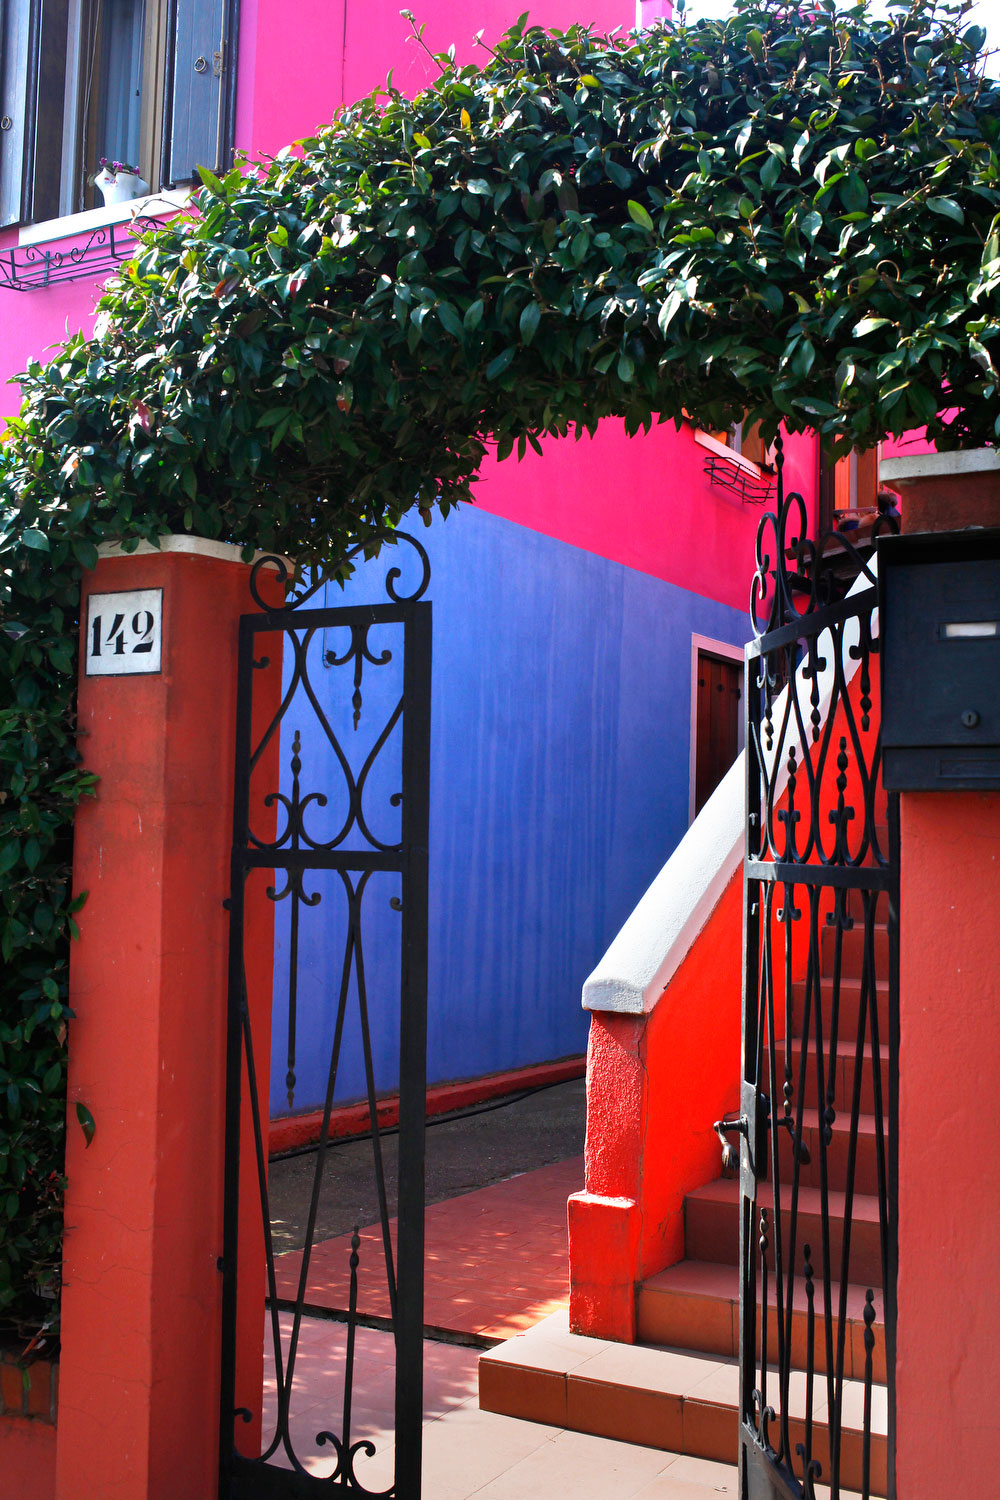 Gated entrance in Burano, Italy | Freckle & Fair